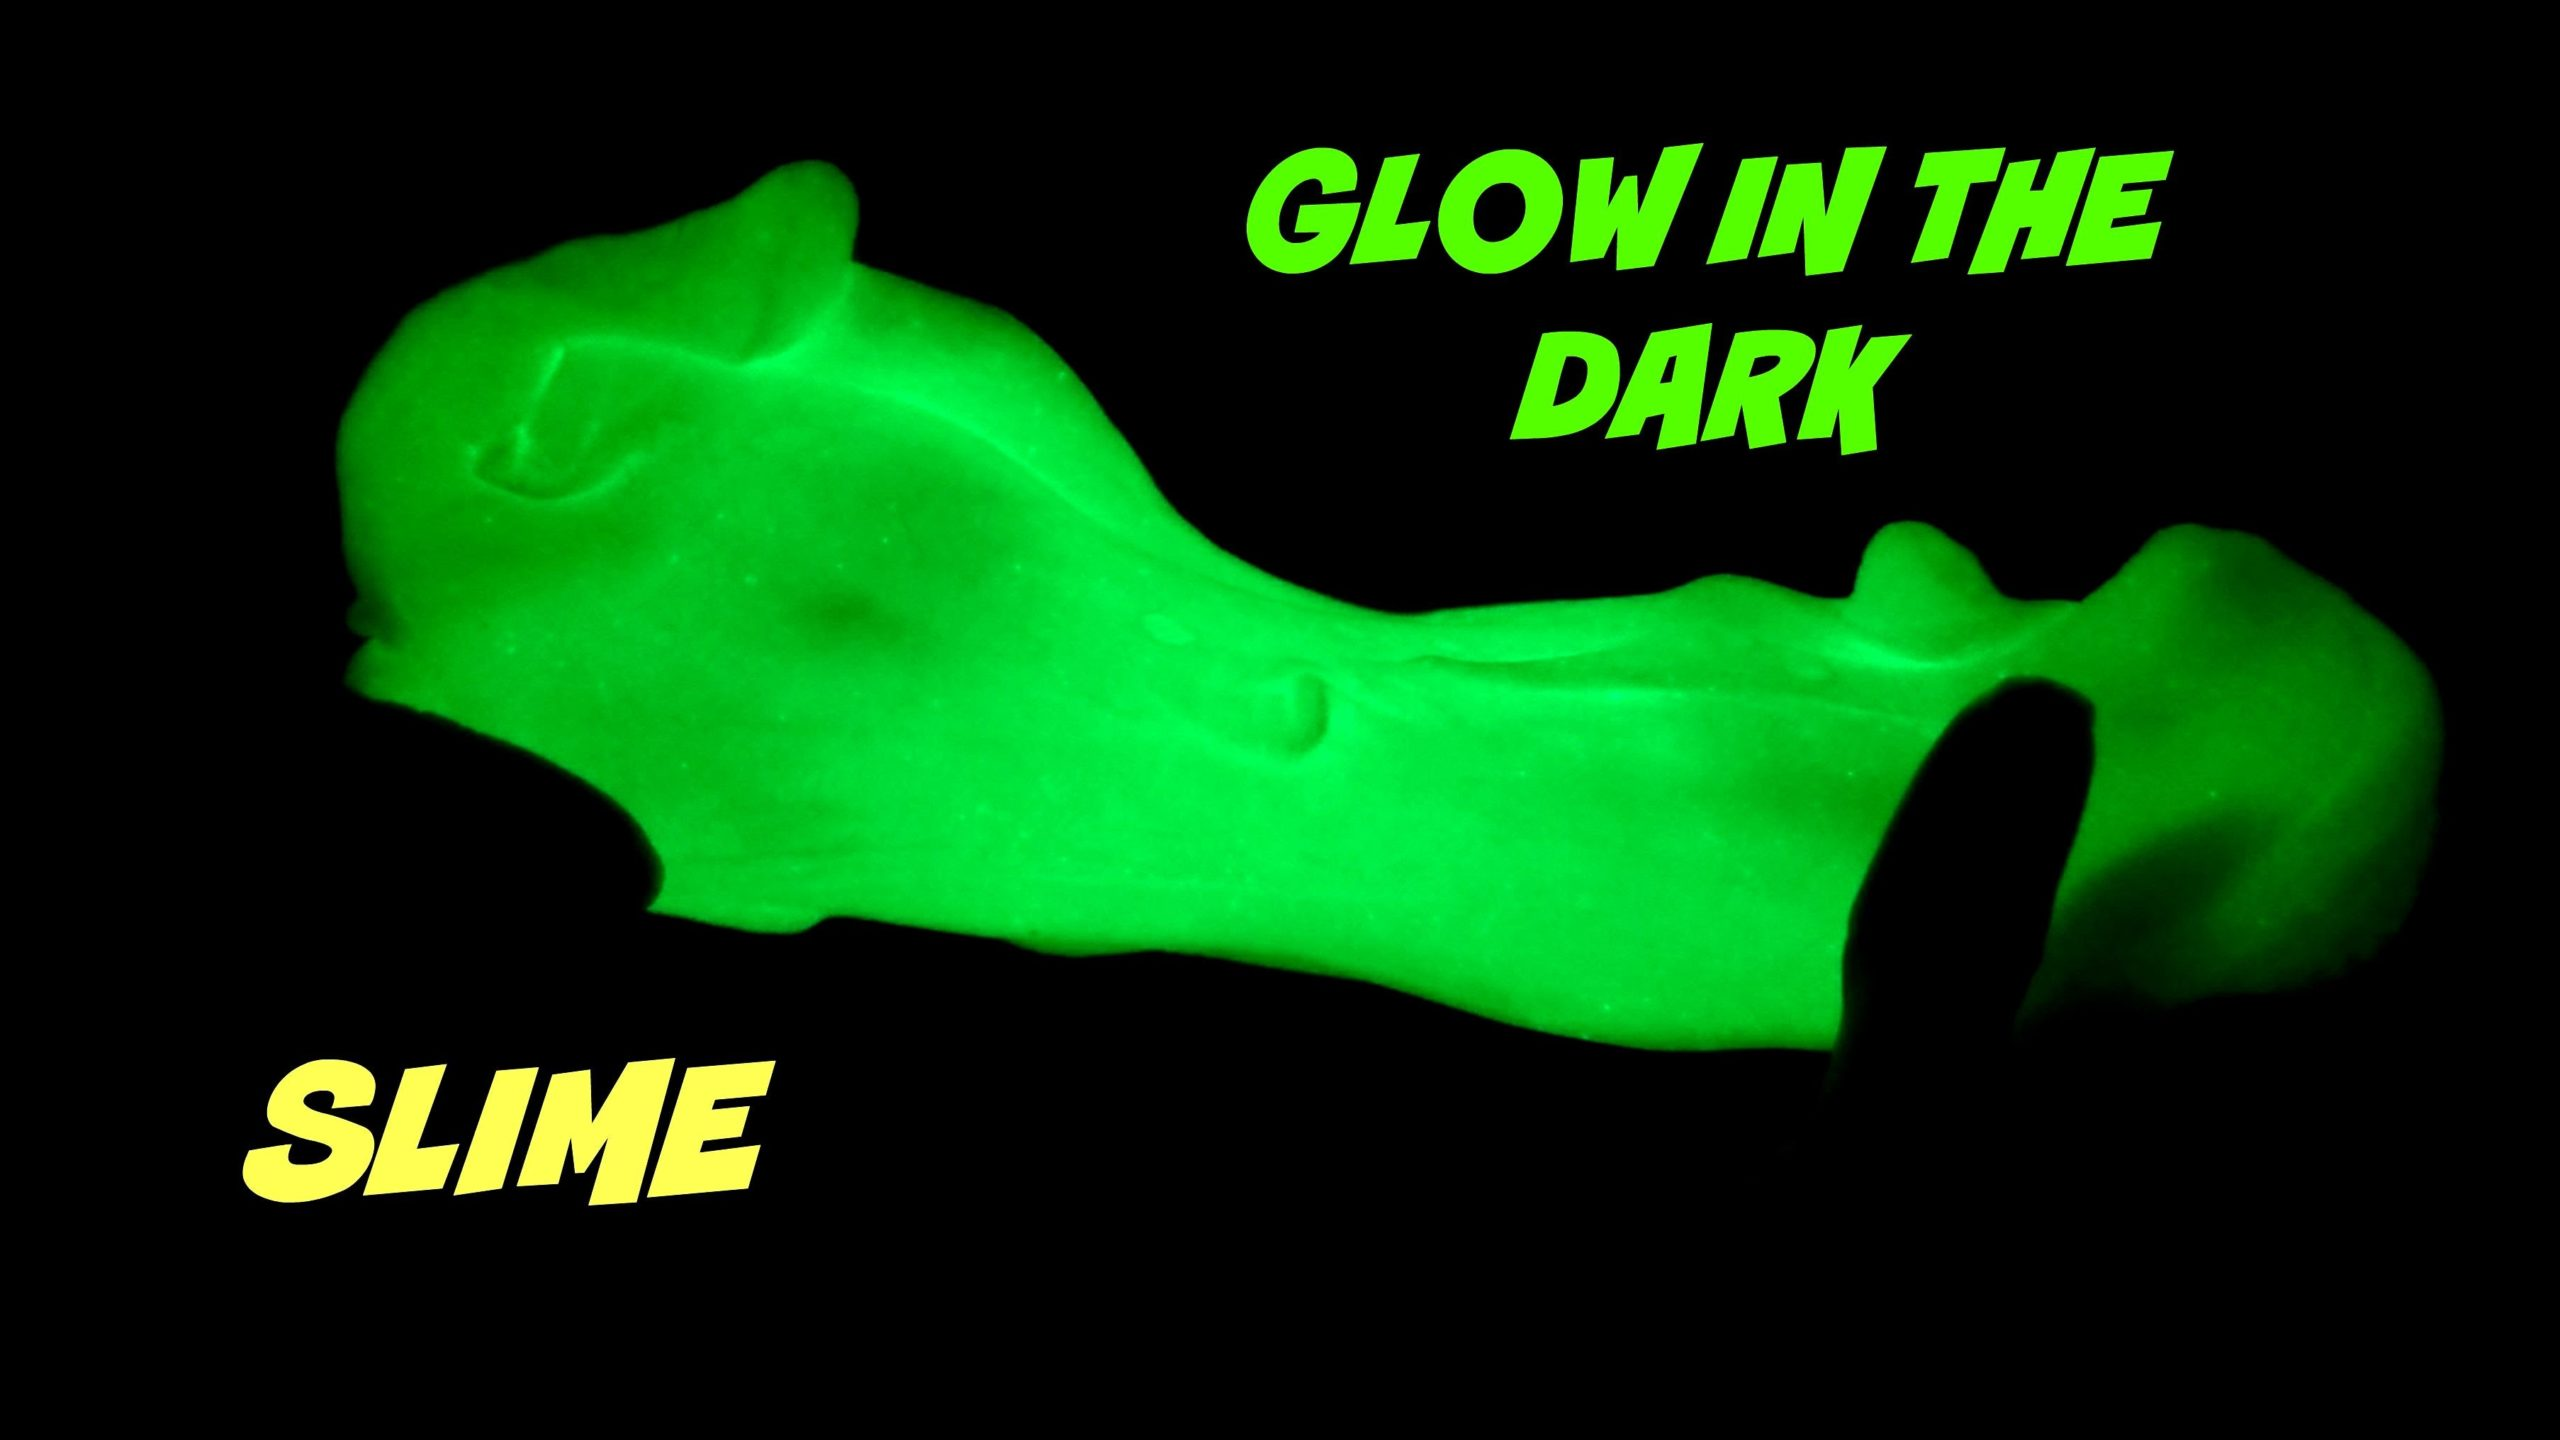 Slime Workshop - Glow in the Dark!